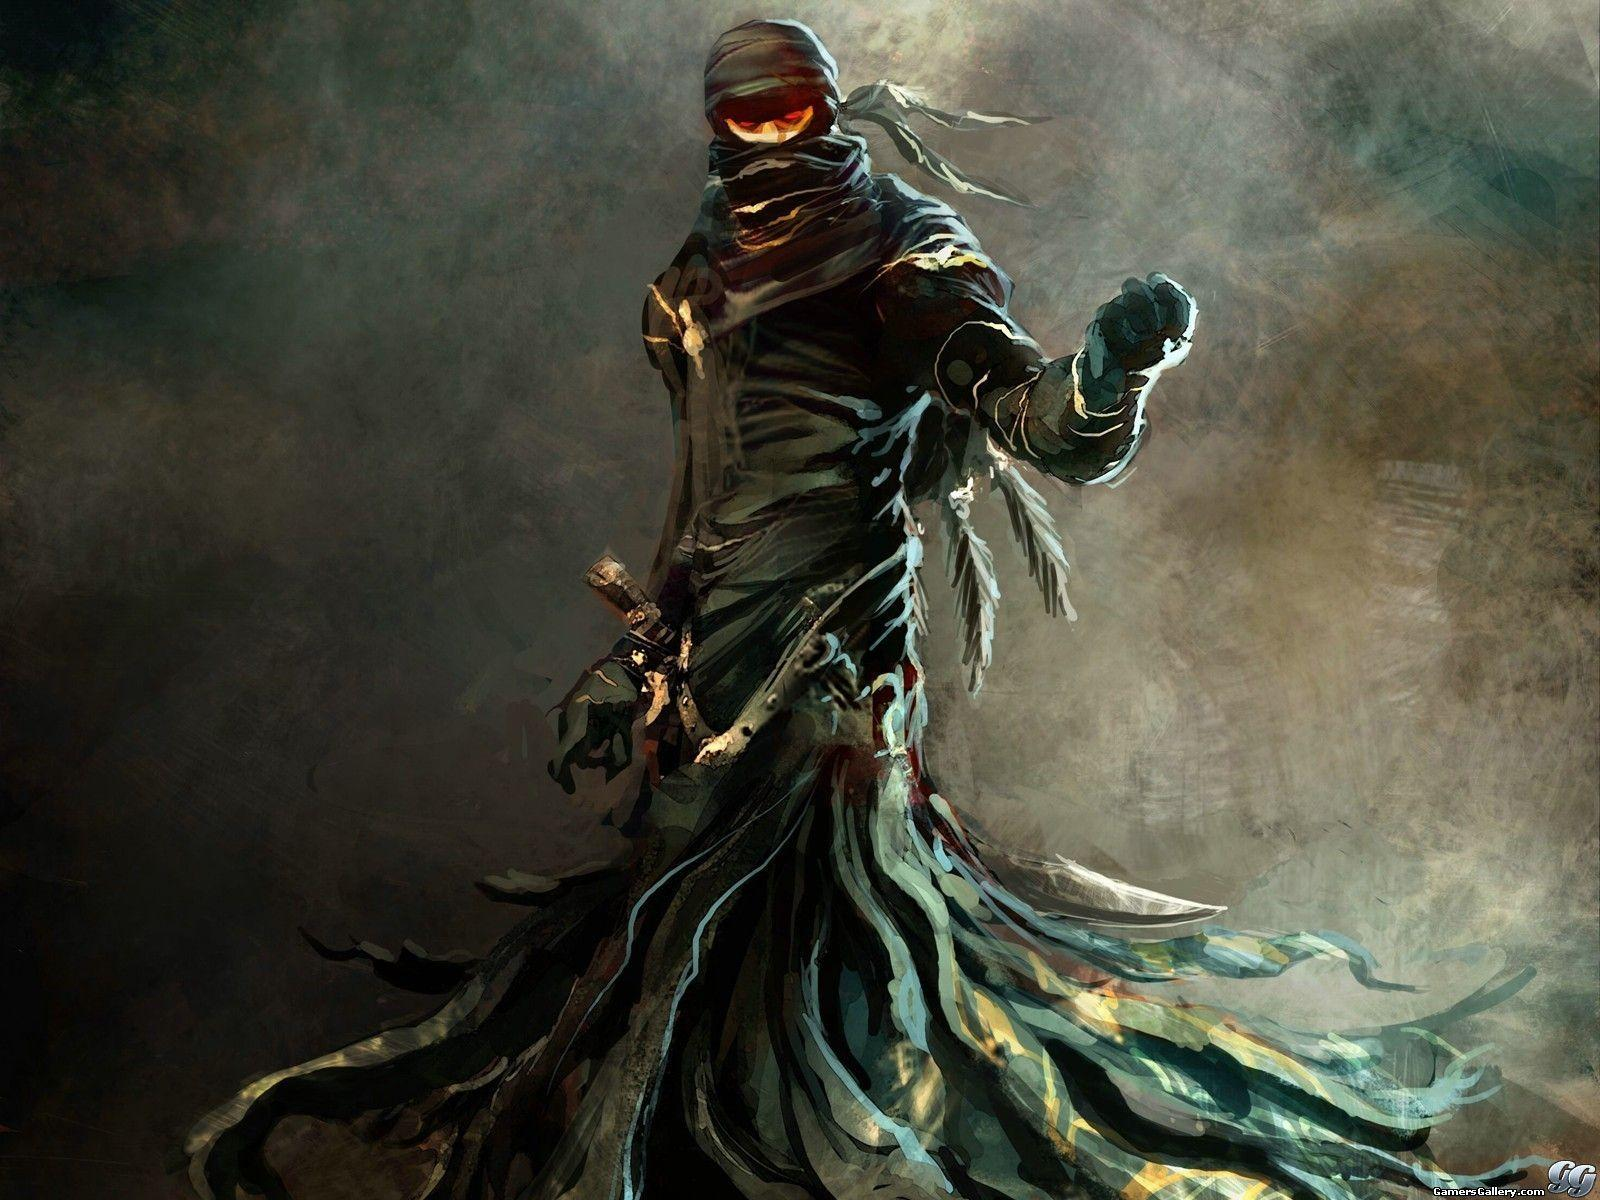 Prince Of Persia Warrior Within Wallpapers Wallpaper Cave